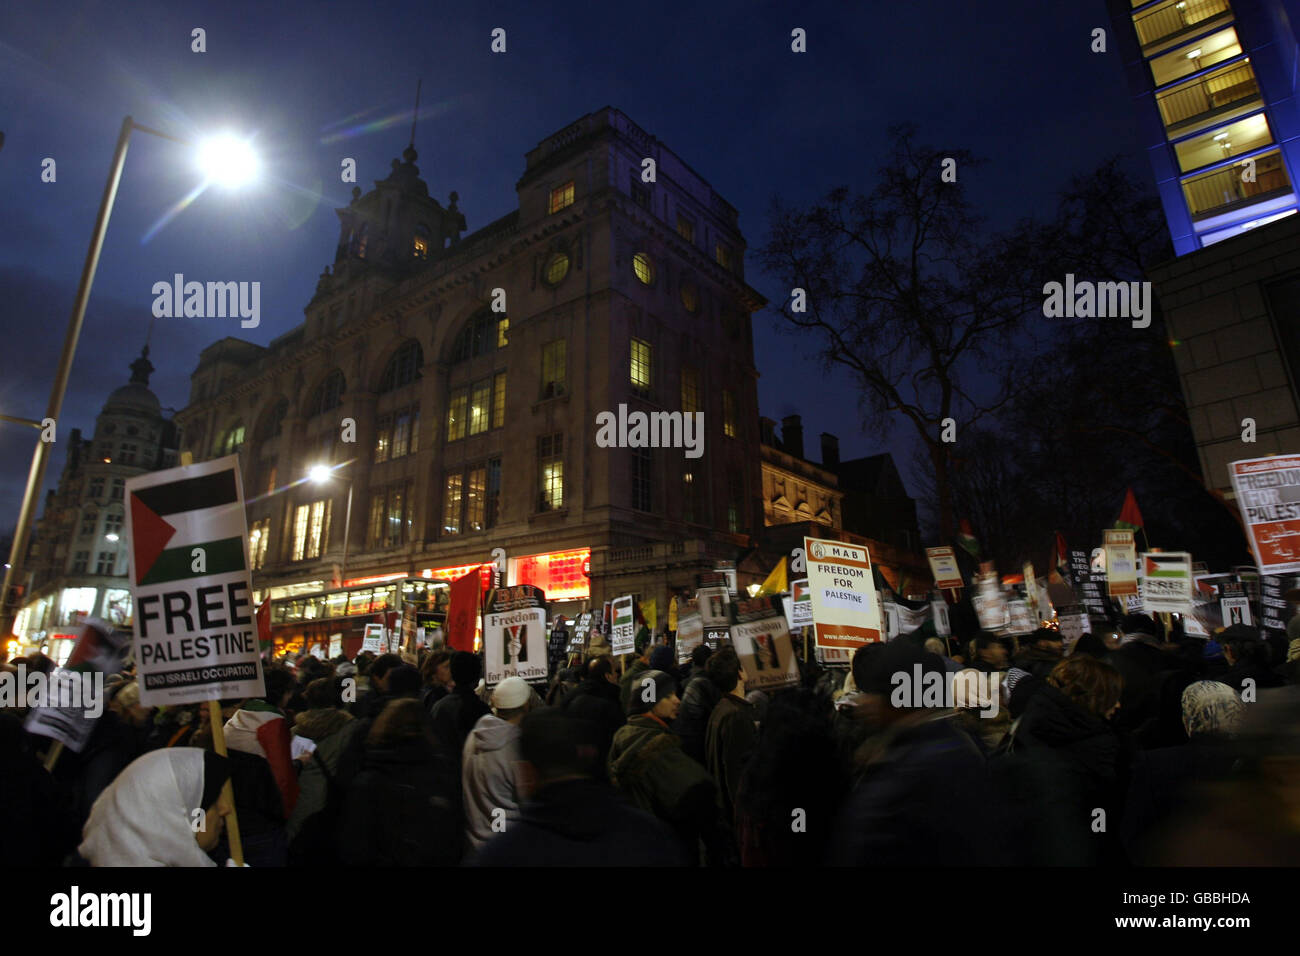 Palestinian protest against Israeli air strikes - Stock Image